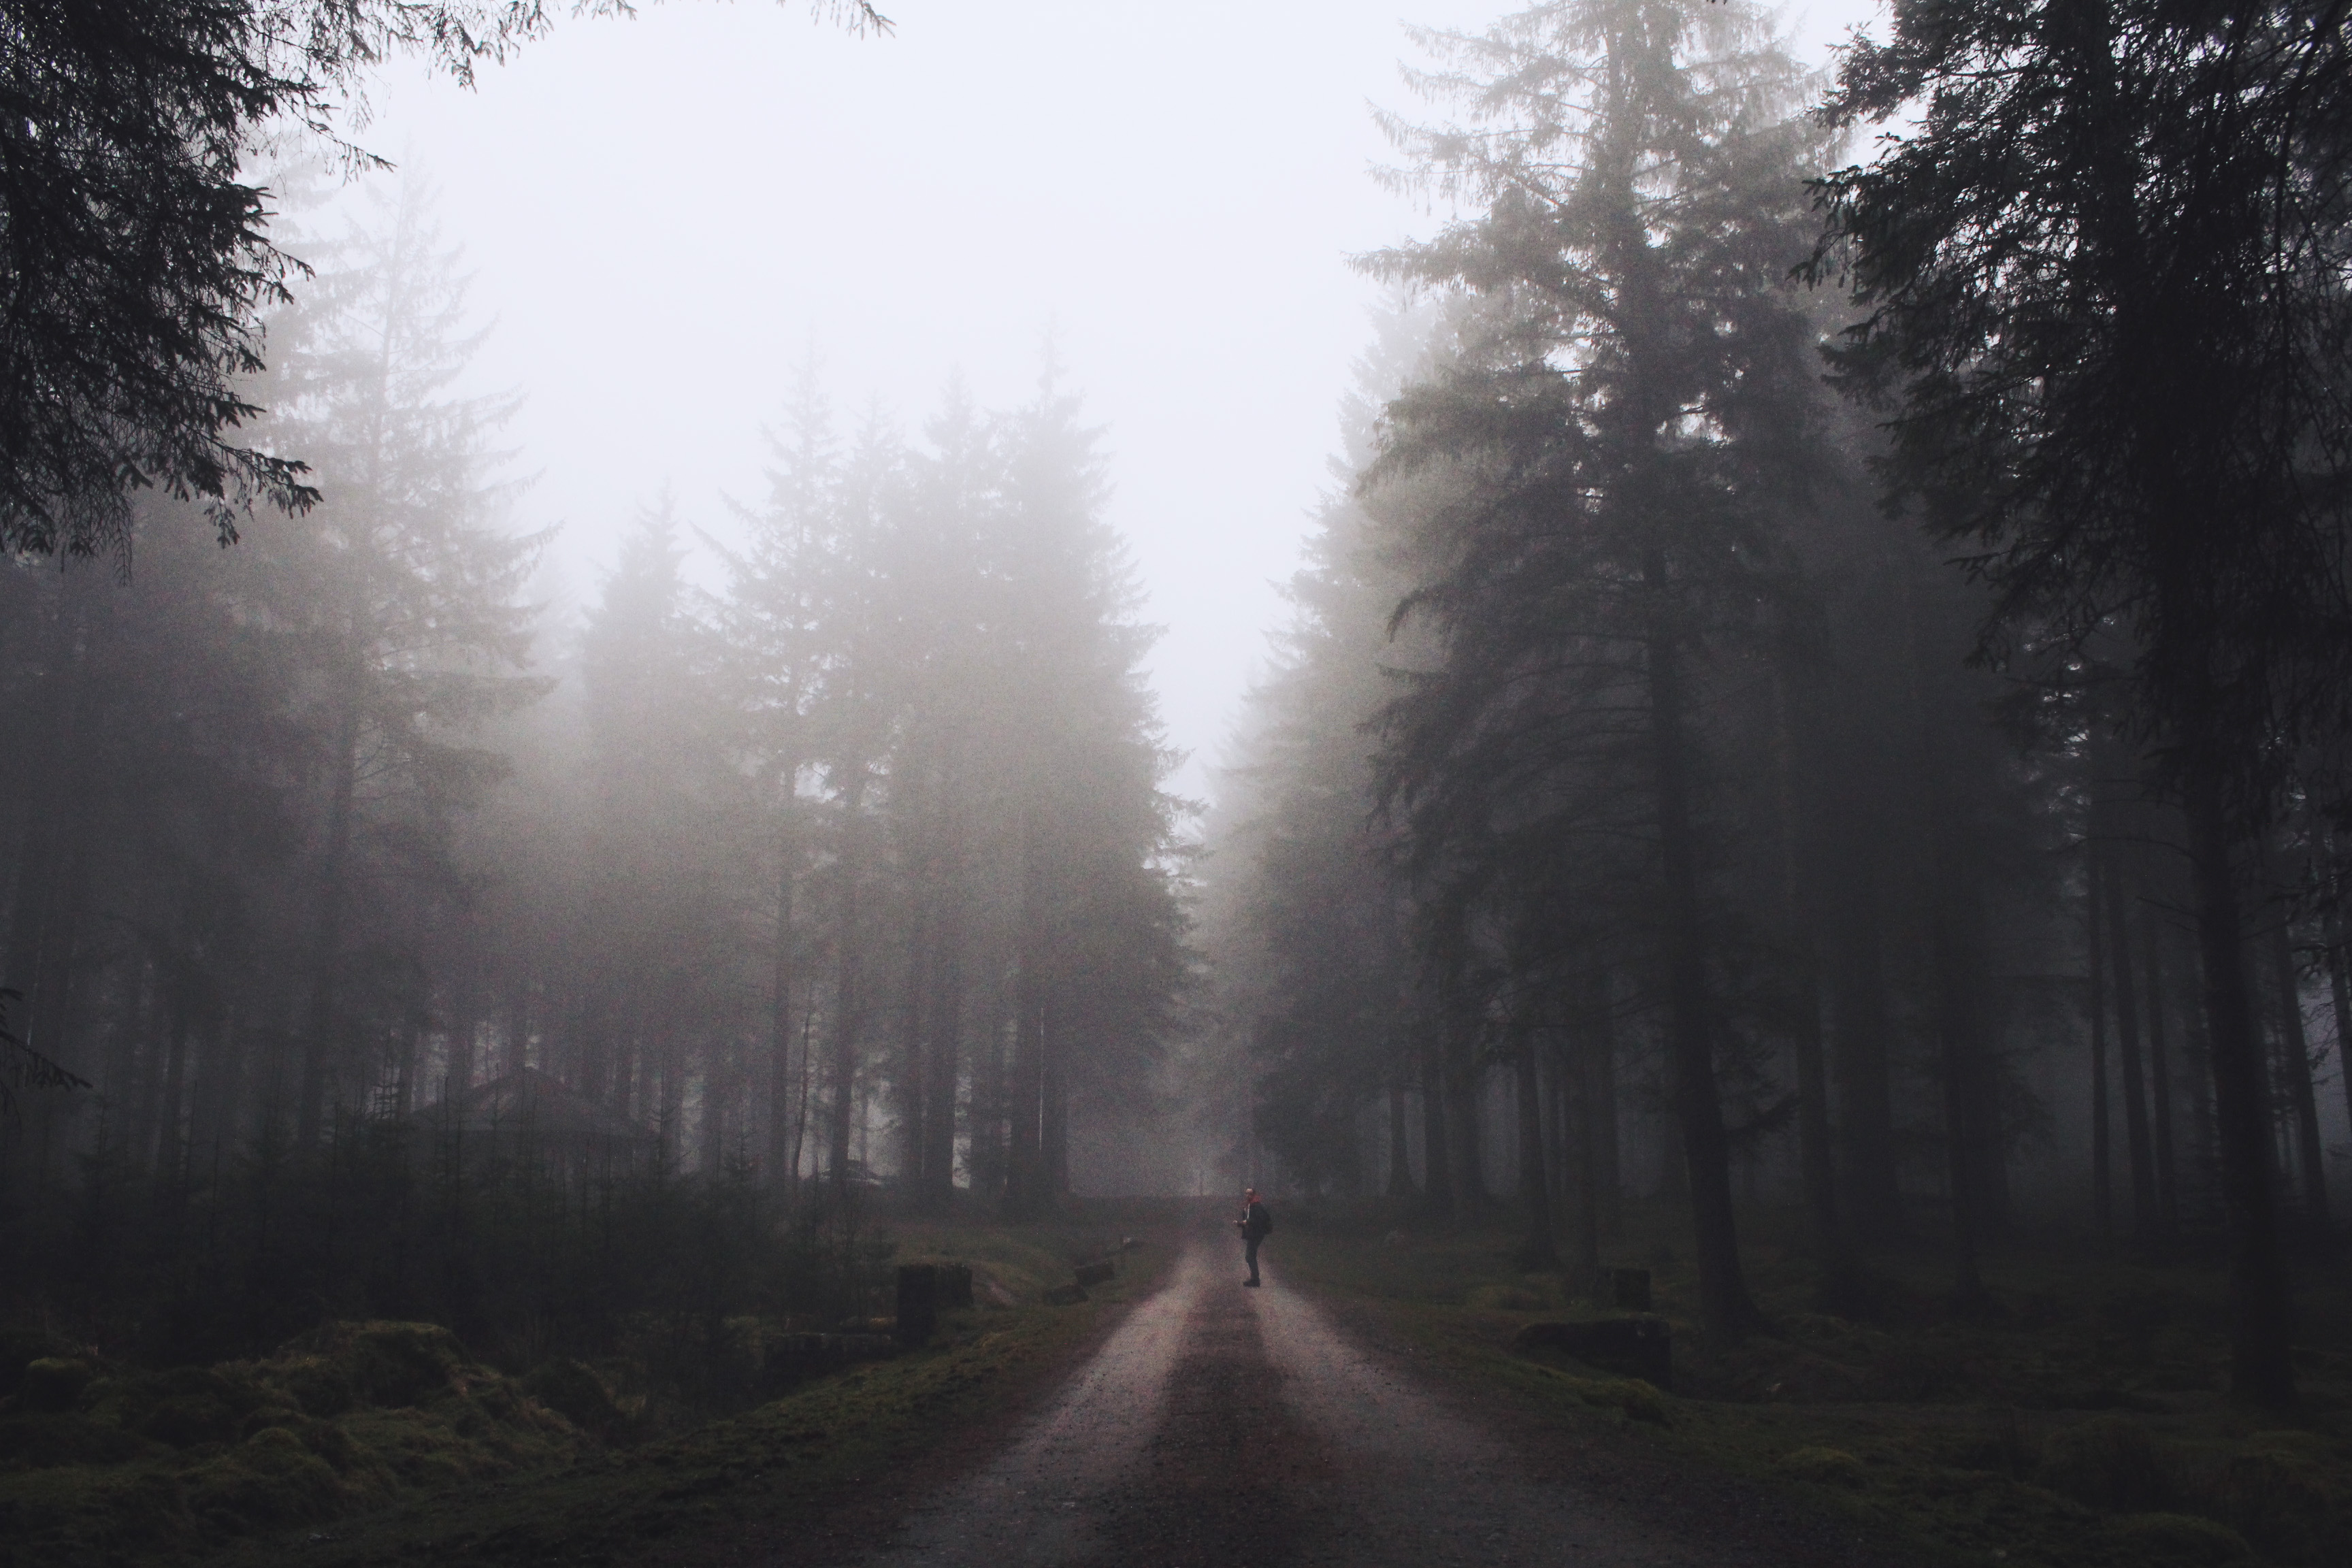 Dark, misty pine trees at Bellever Forest, Dartmoor